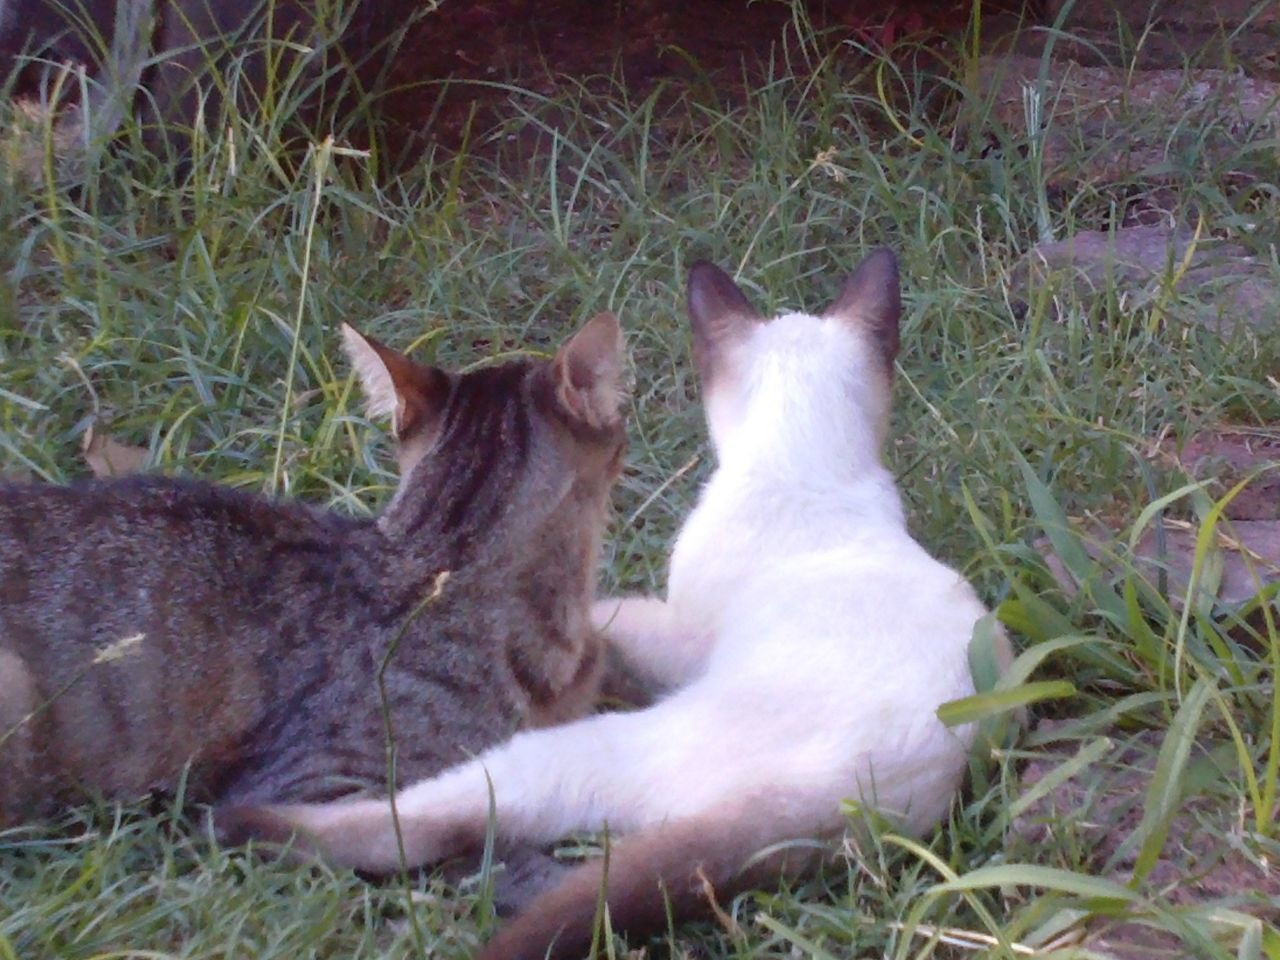 grass, domestic cat, cat, animal themes, feline, relaxation, mammal, no people, lying down, domestic animals, day, outdoors, sitting, pets, togetherness, nature